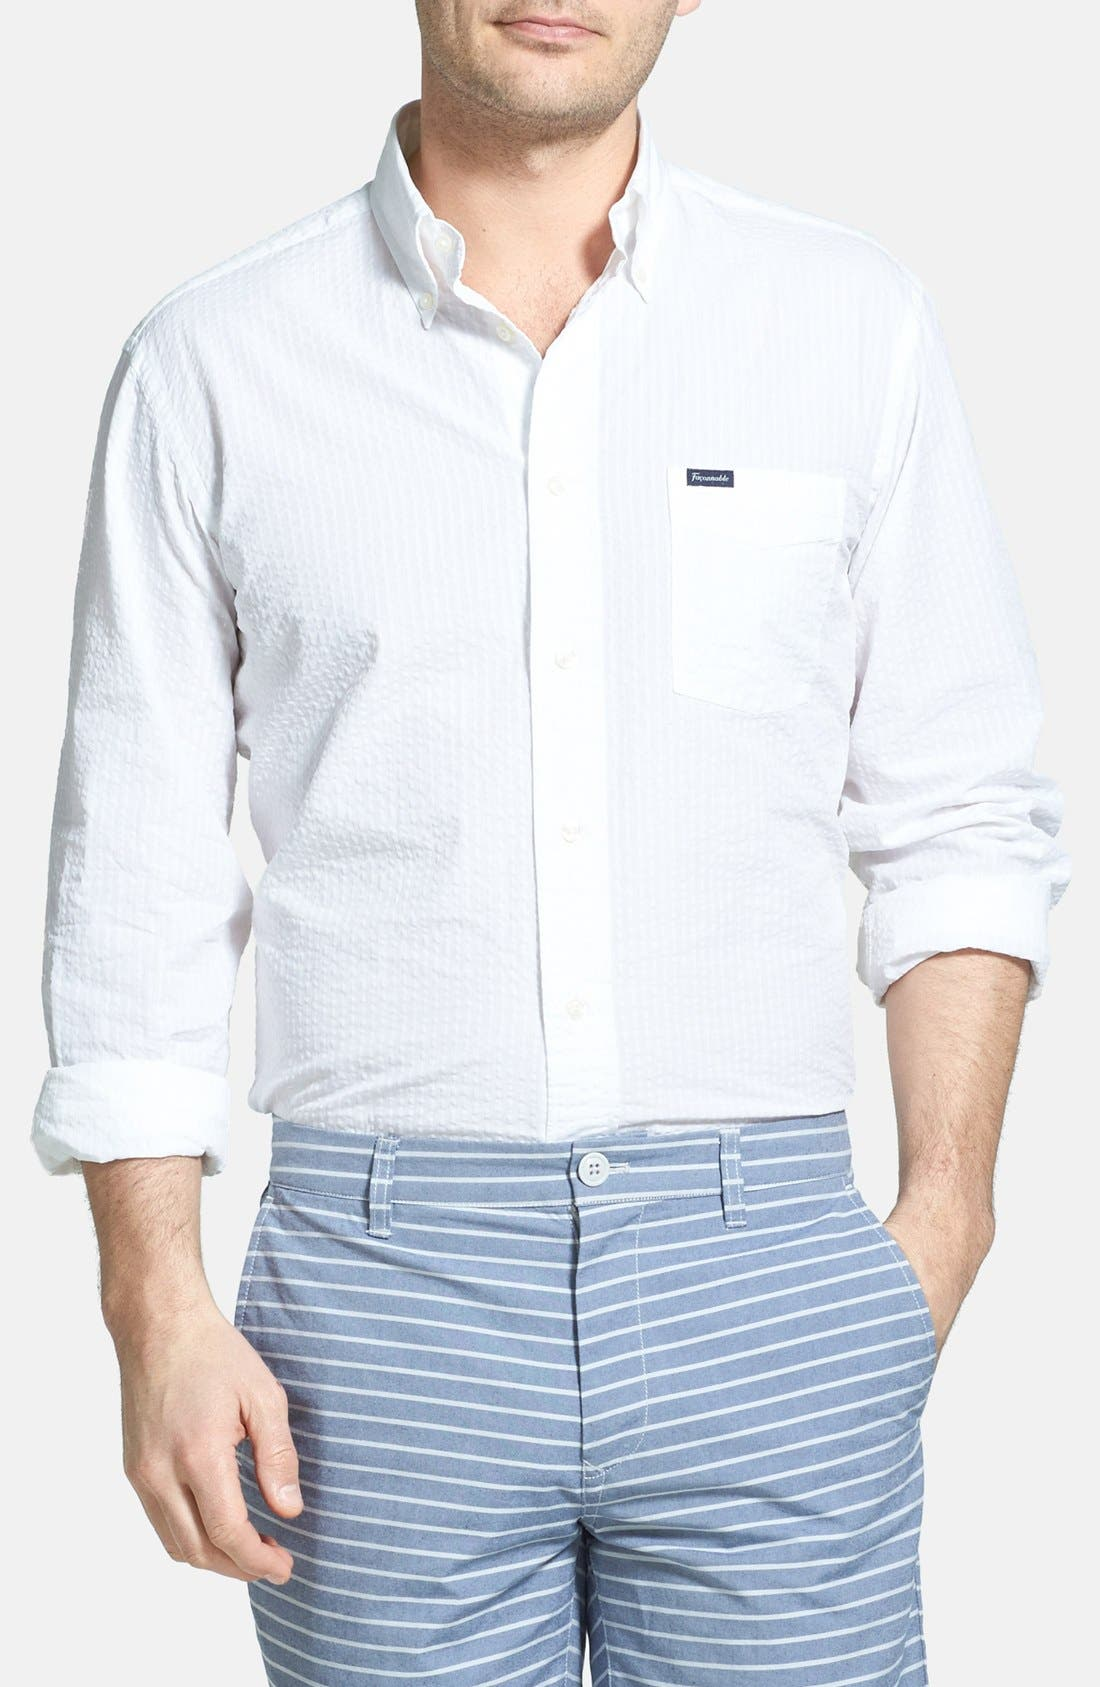 Alternate Image 1 Selected - Façonnable Classic Fit Seersucker Sport Shirt (Tall)